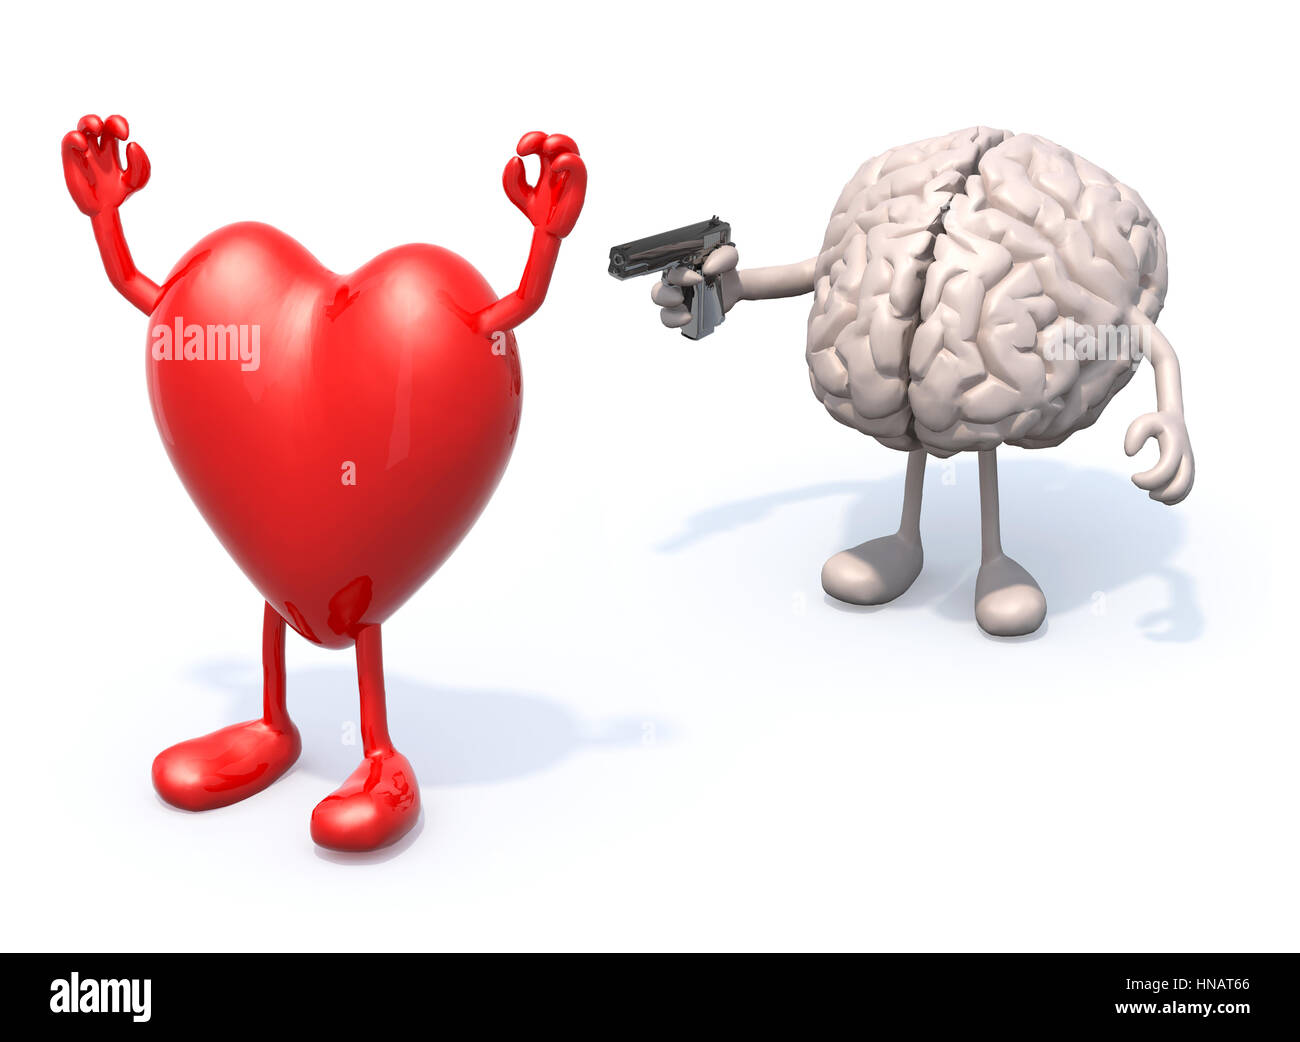 heart and brain with arms and legs, brain has a gun and points it at the heart who has his hands up - Stock Image